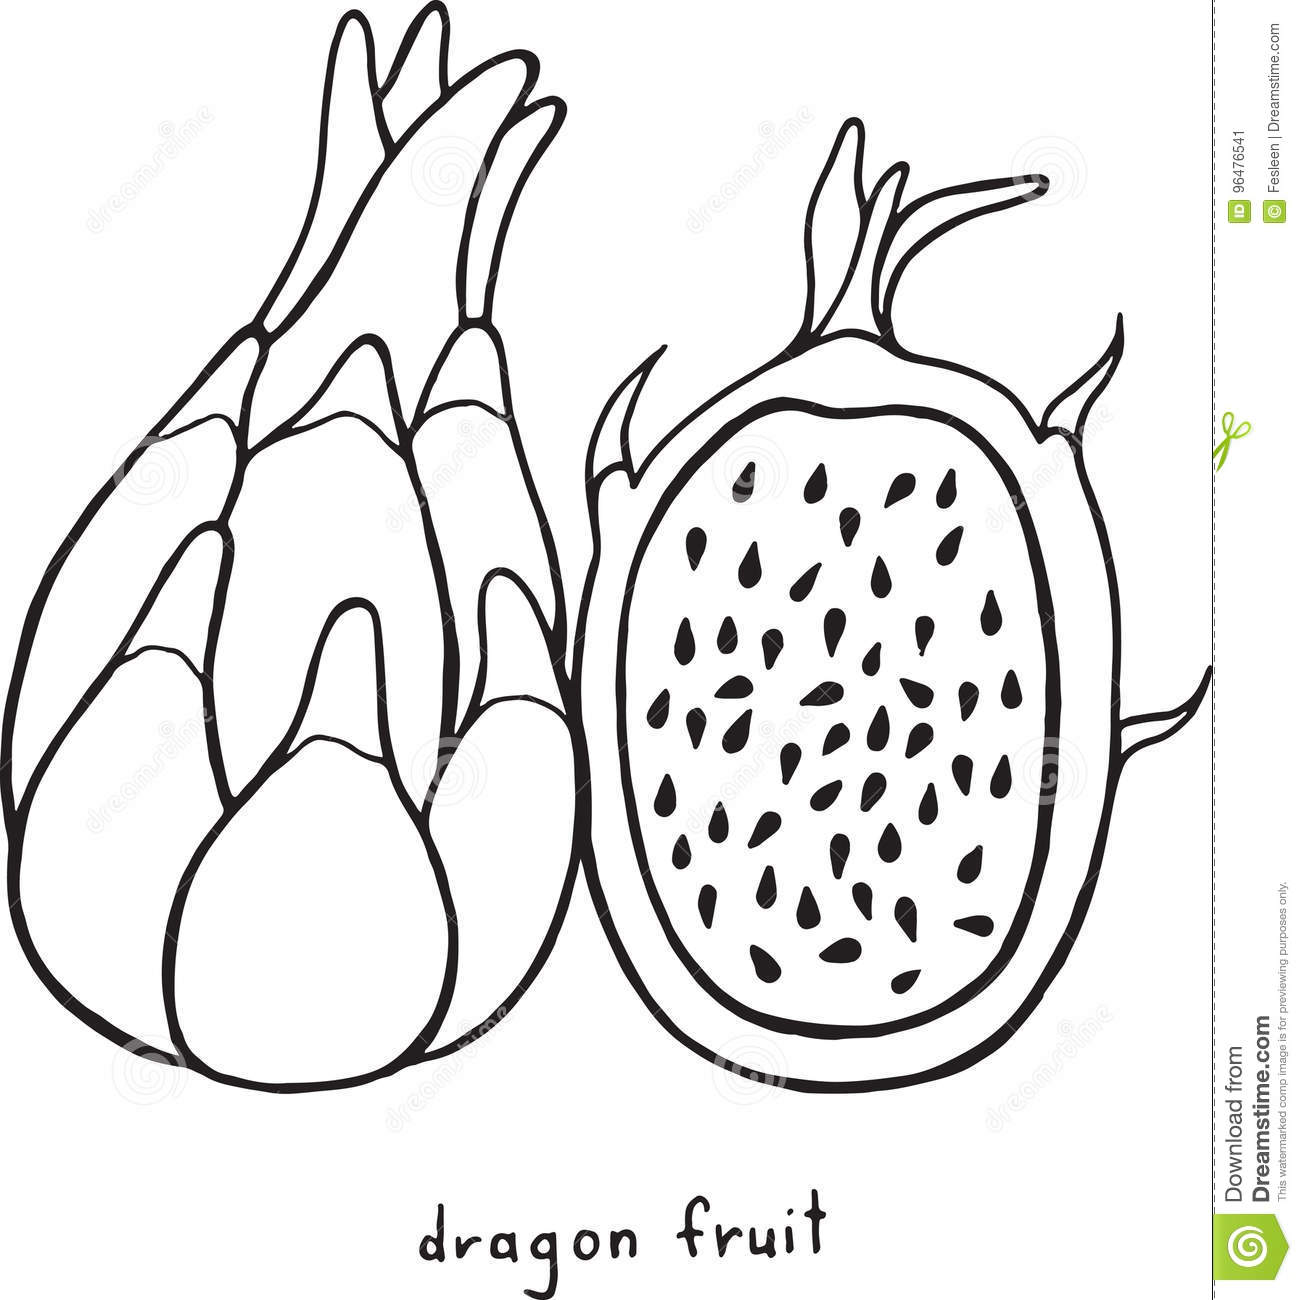 Coloriage Fruits Tropicaux.Page De Coloration De Fruit Du Dragon Art Noir Et Blanc F De Vecteur